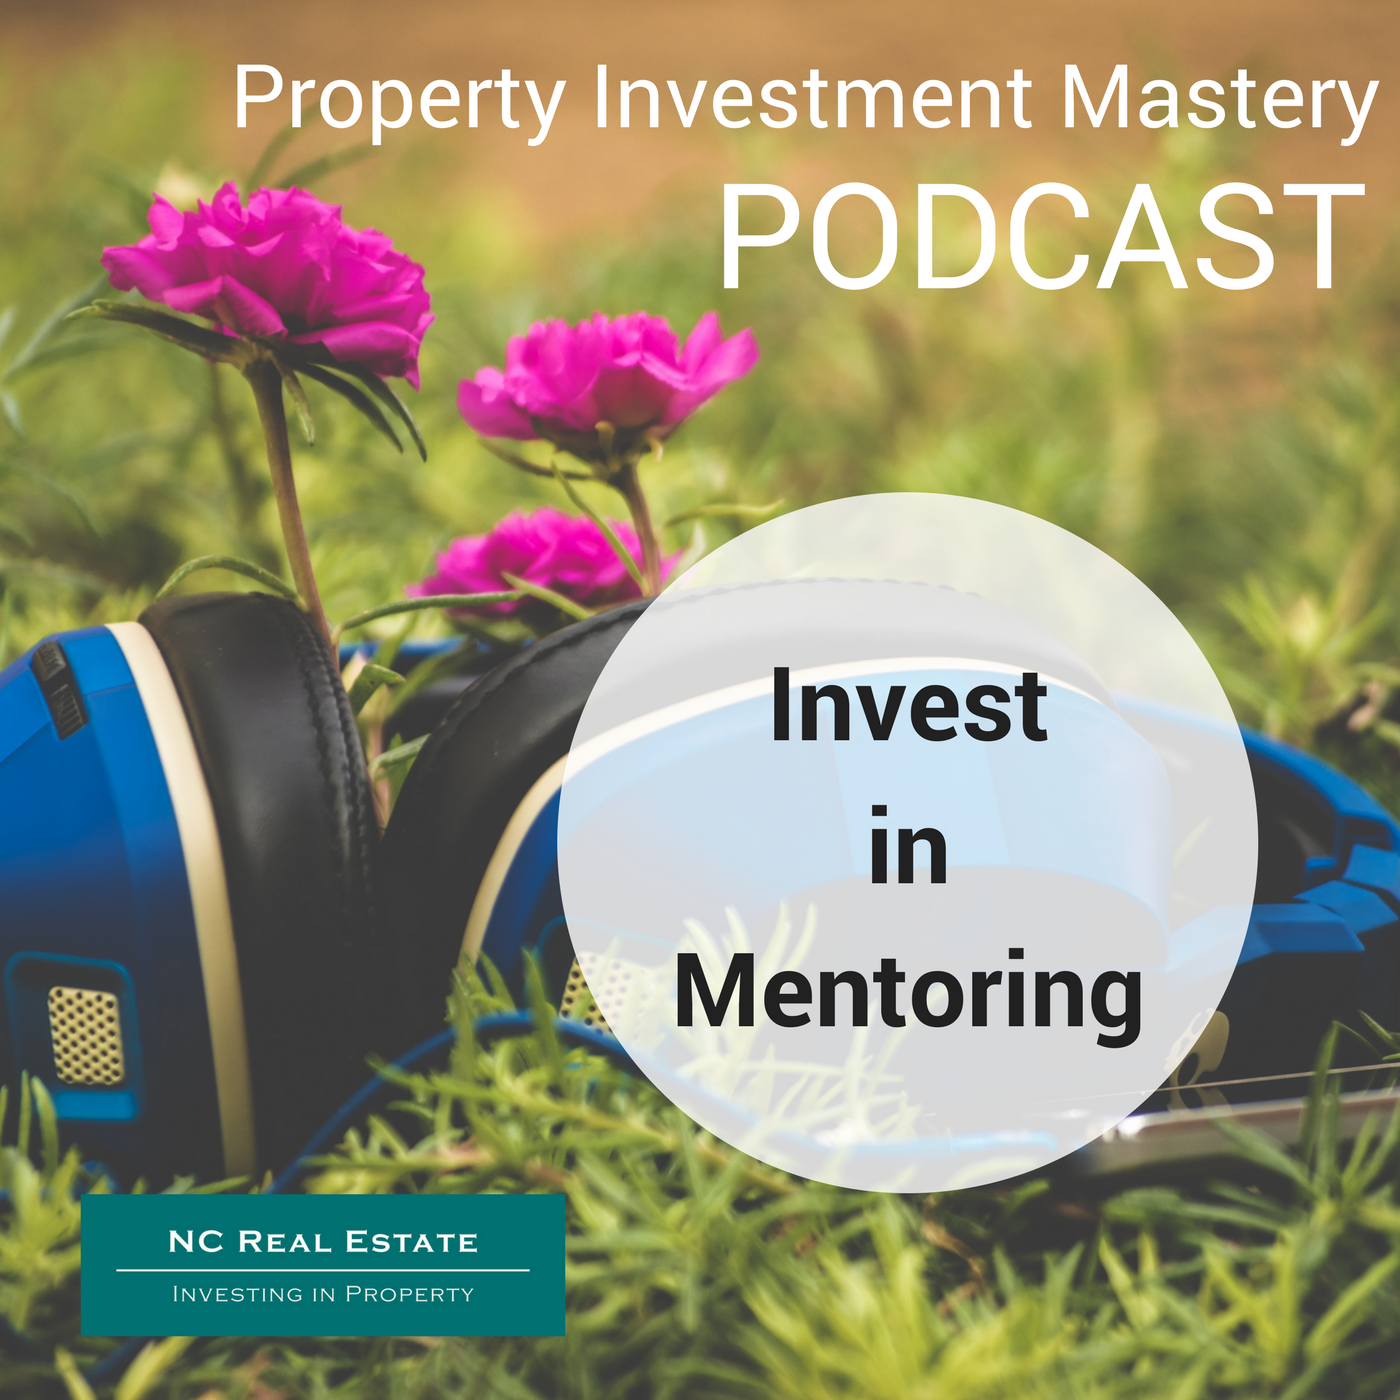 PODCAST- Invest in Mentoring